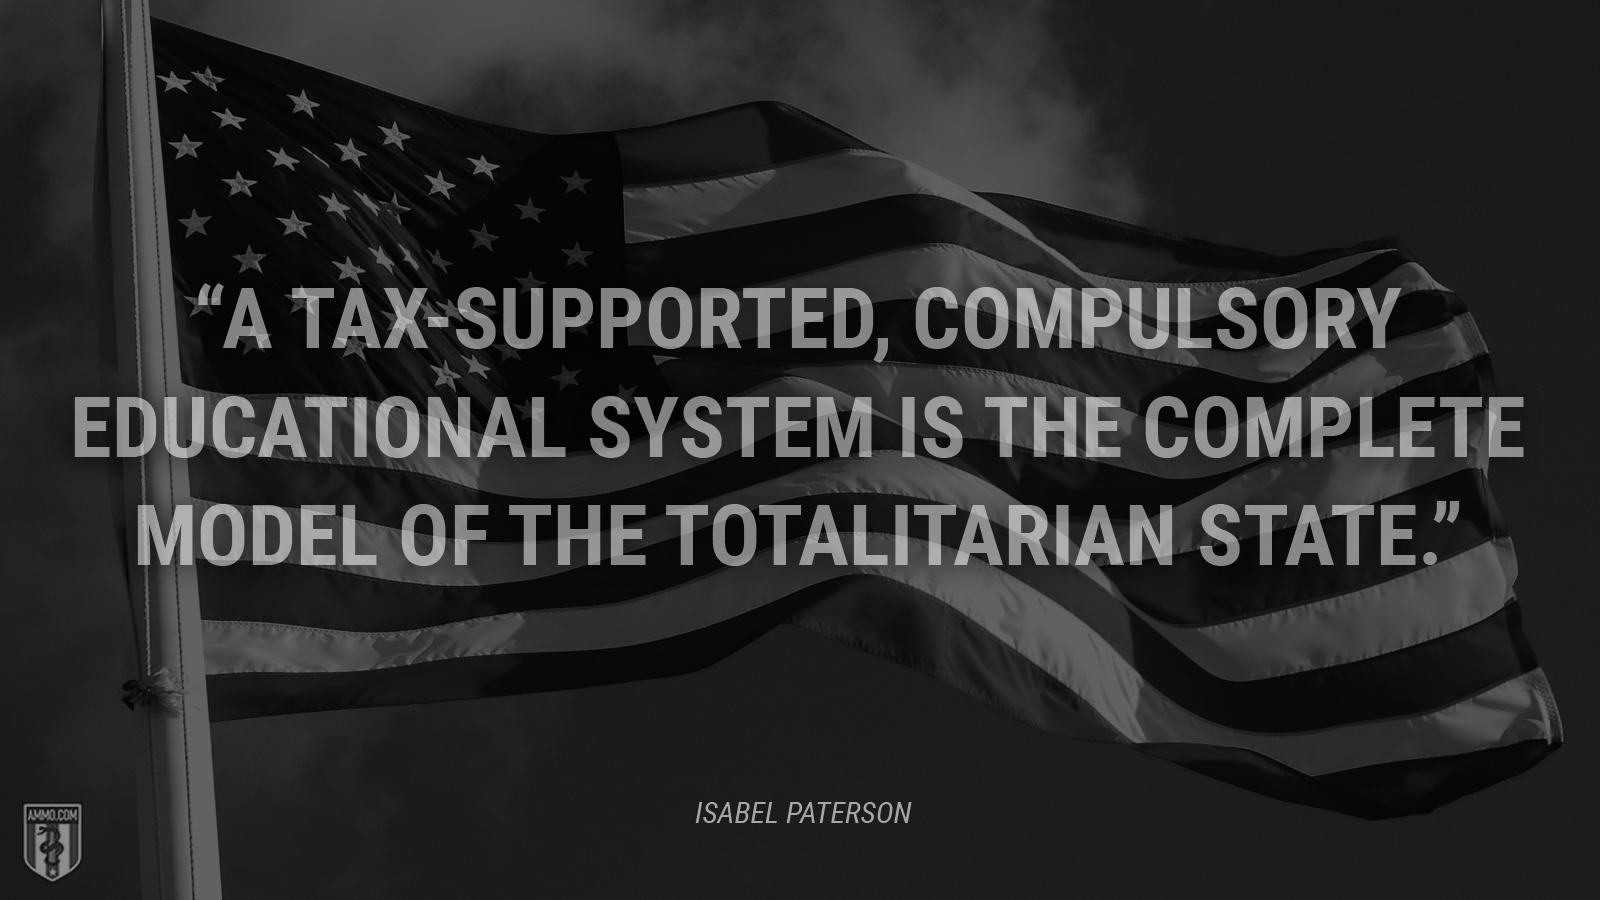 """A tax-supported, compulsory educational system is the complete model of the totalitarian state."" - Isabel Paterson"